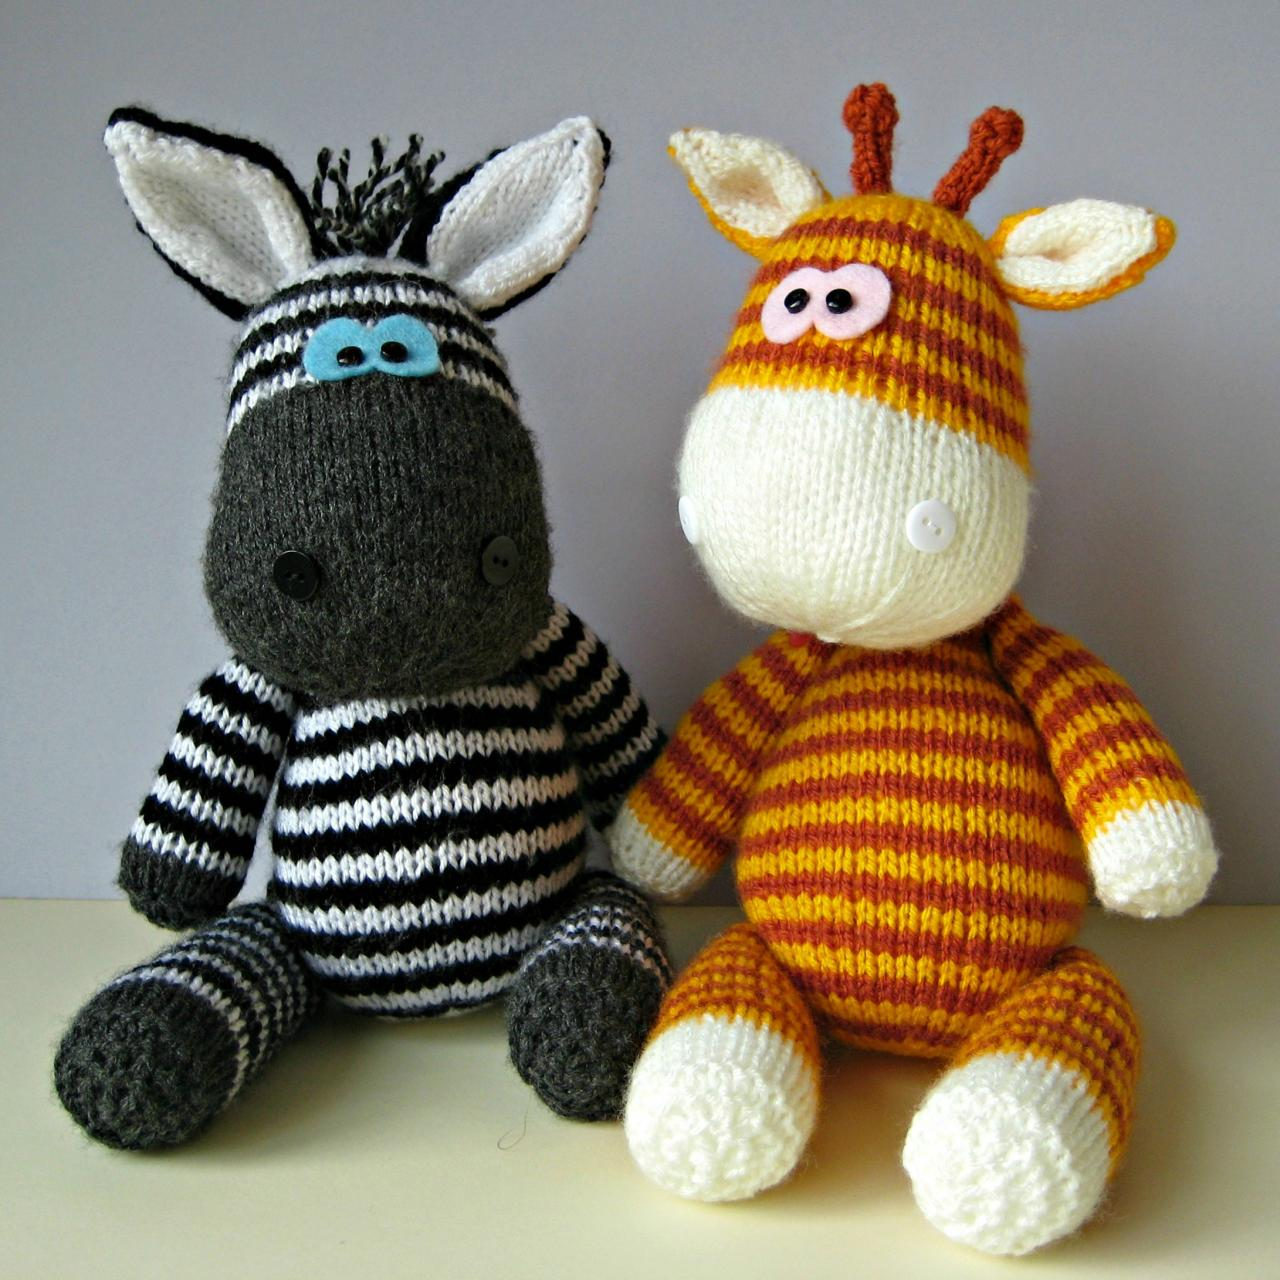 Free Crochet Zebra Patterns : and ziggy zebra toy knitting patterns gerry giraffe and ziggy zebra ...